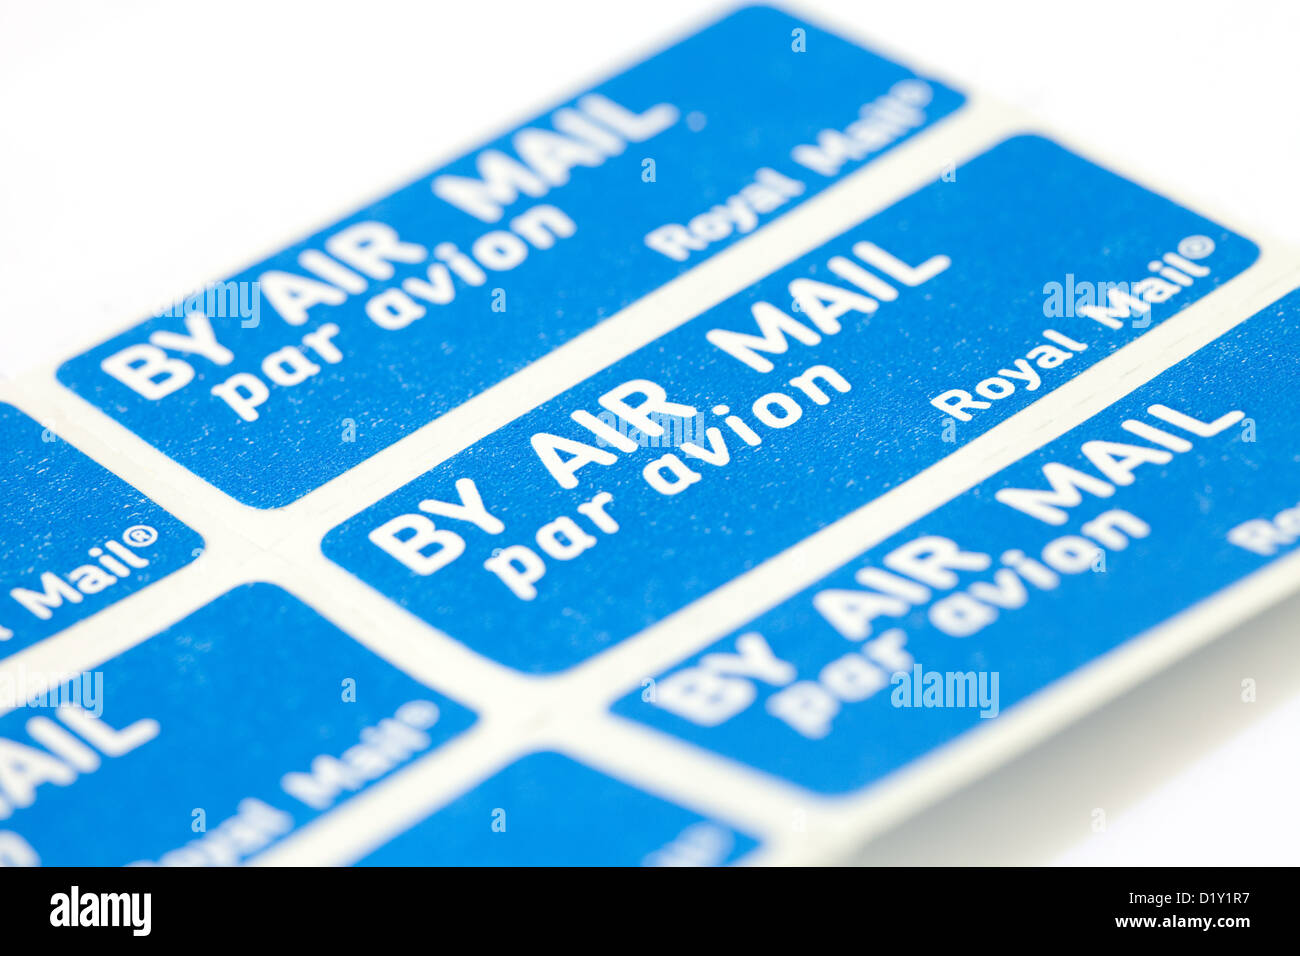 By air mail, par avion stamp, sticker for overseas letters, UK - Stock Image